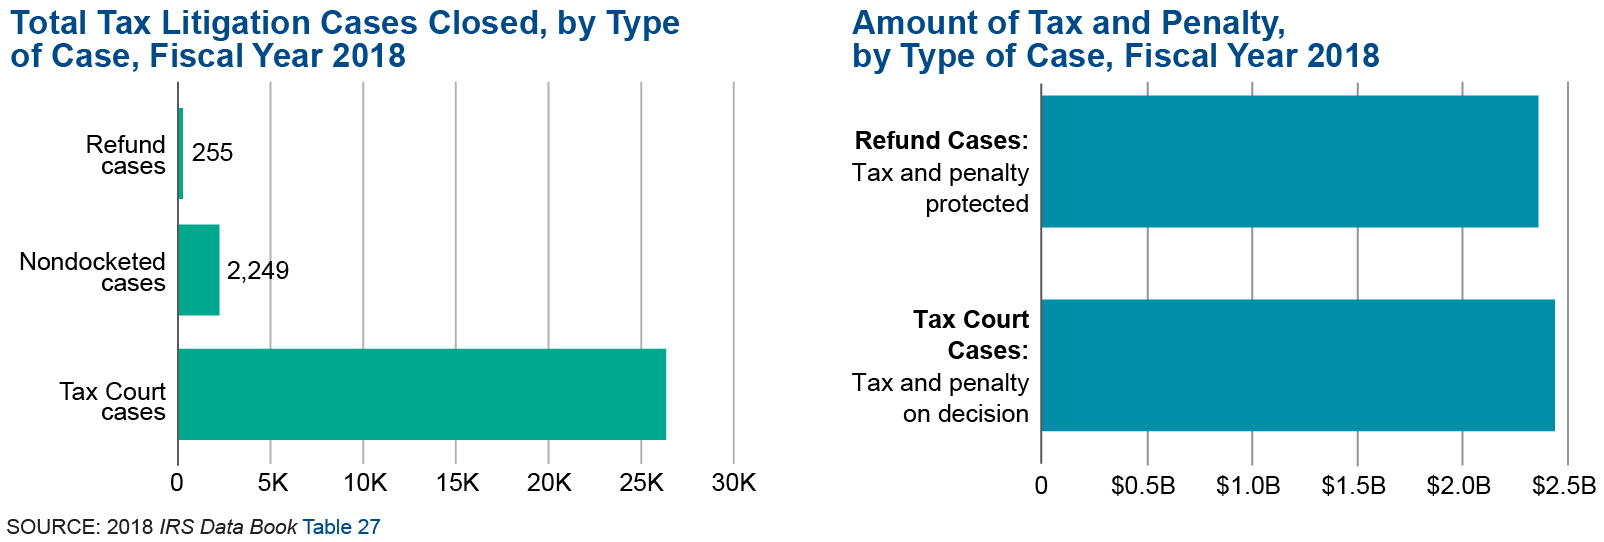 Chart 1 shows the number of tax litigation cases closed by type of case in fiscal year 2018. There were over 26,341 cases closed for tax court cases. Chart 2 shows the amount of tax and penalty by type of case in fiscal year 2018. Tax court cases closed in fiscal year 2018 resulted in almost $7.5 billion in taxes and penalty. Refund cases closed in fiscal year 2014 protected $2.8 billion in taxes and penalty.